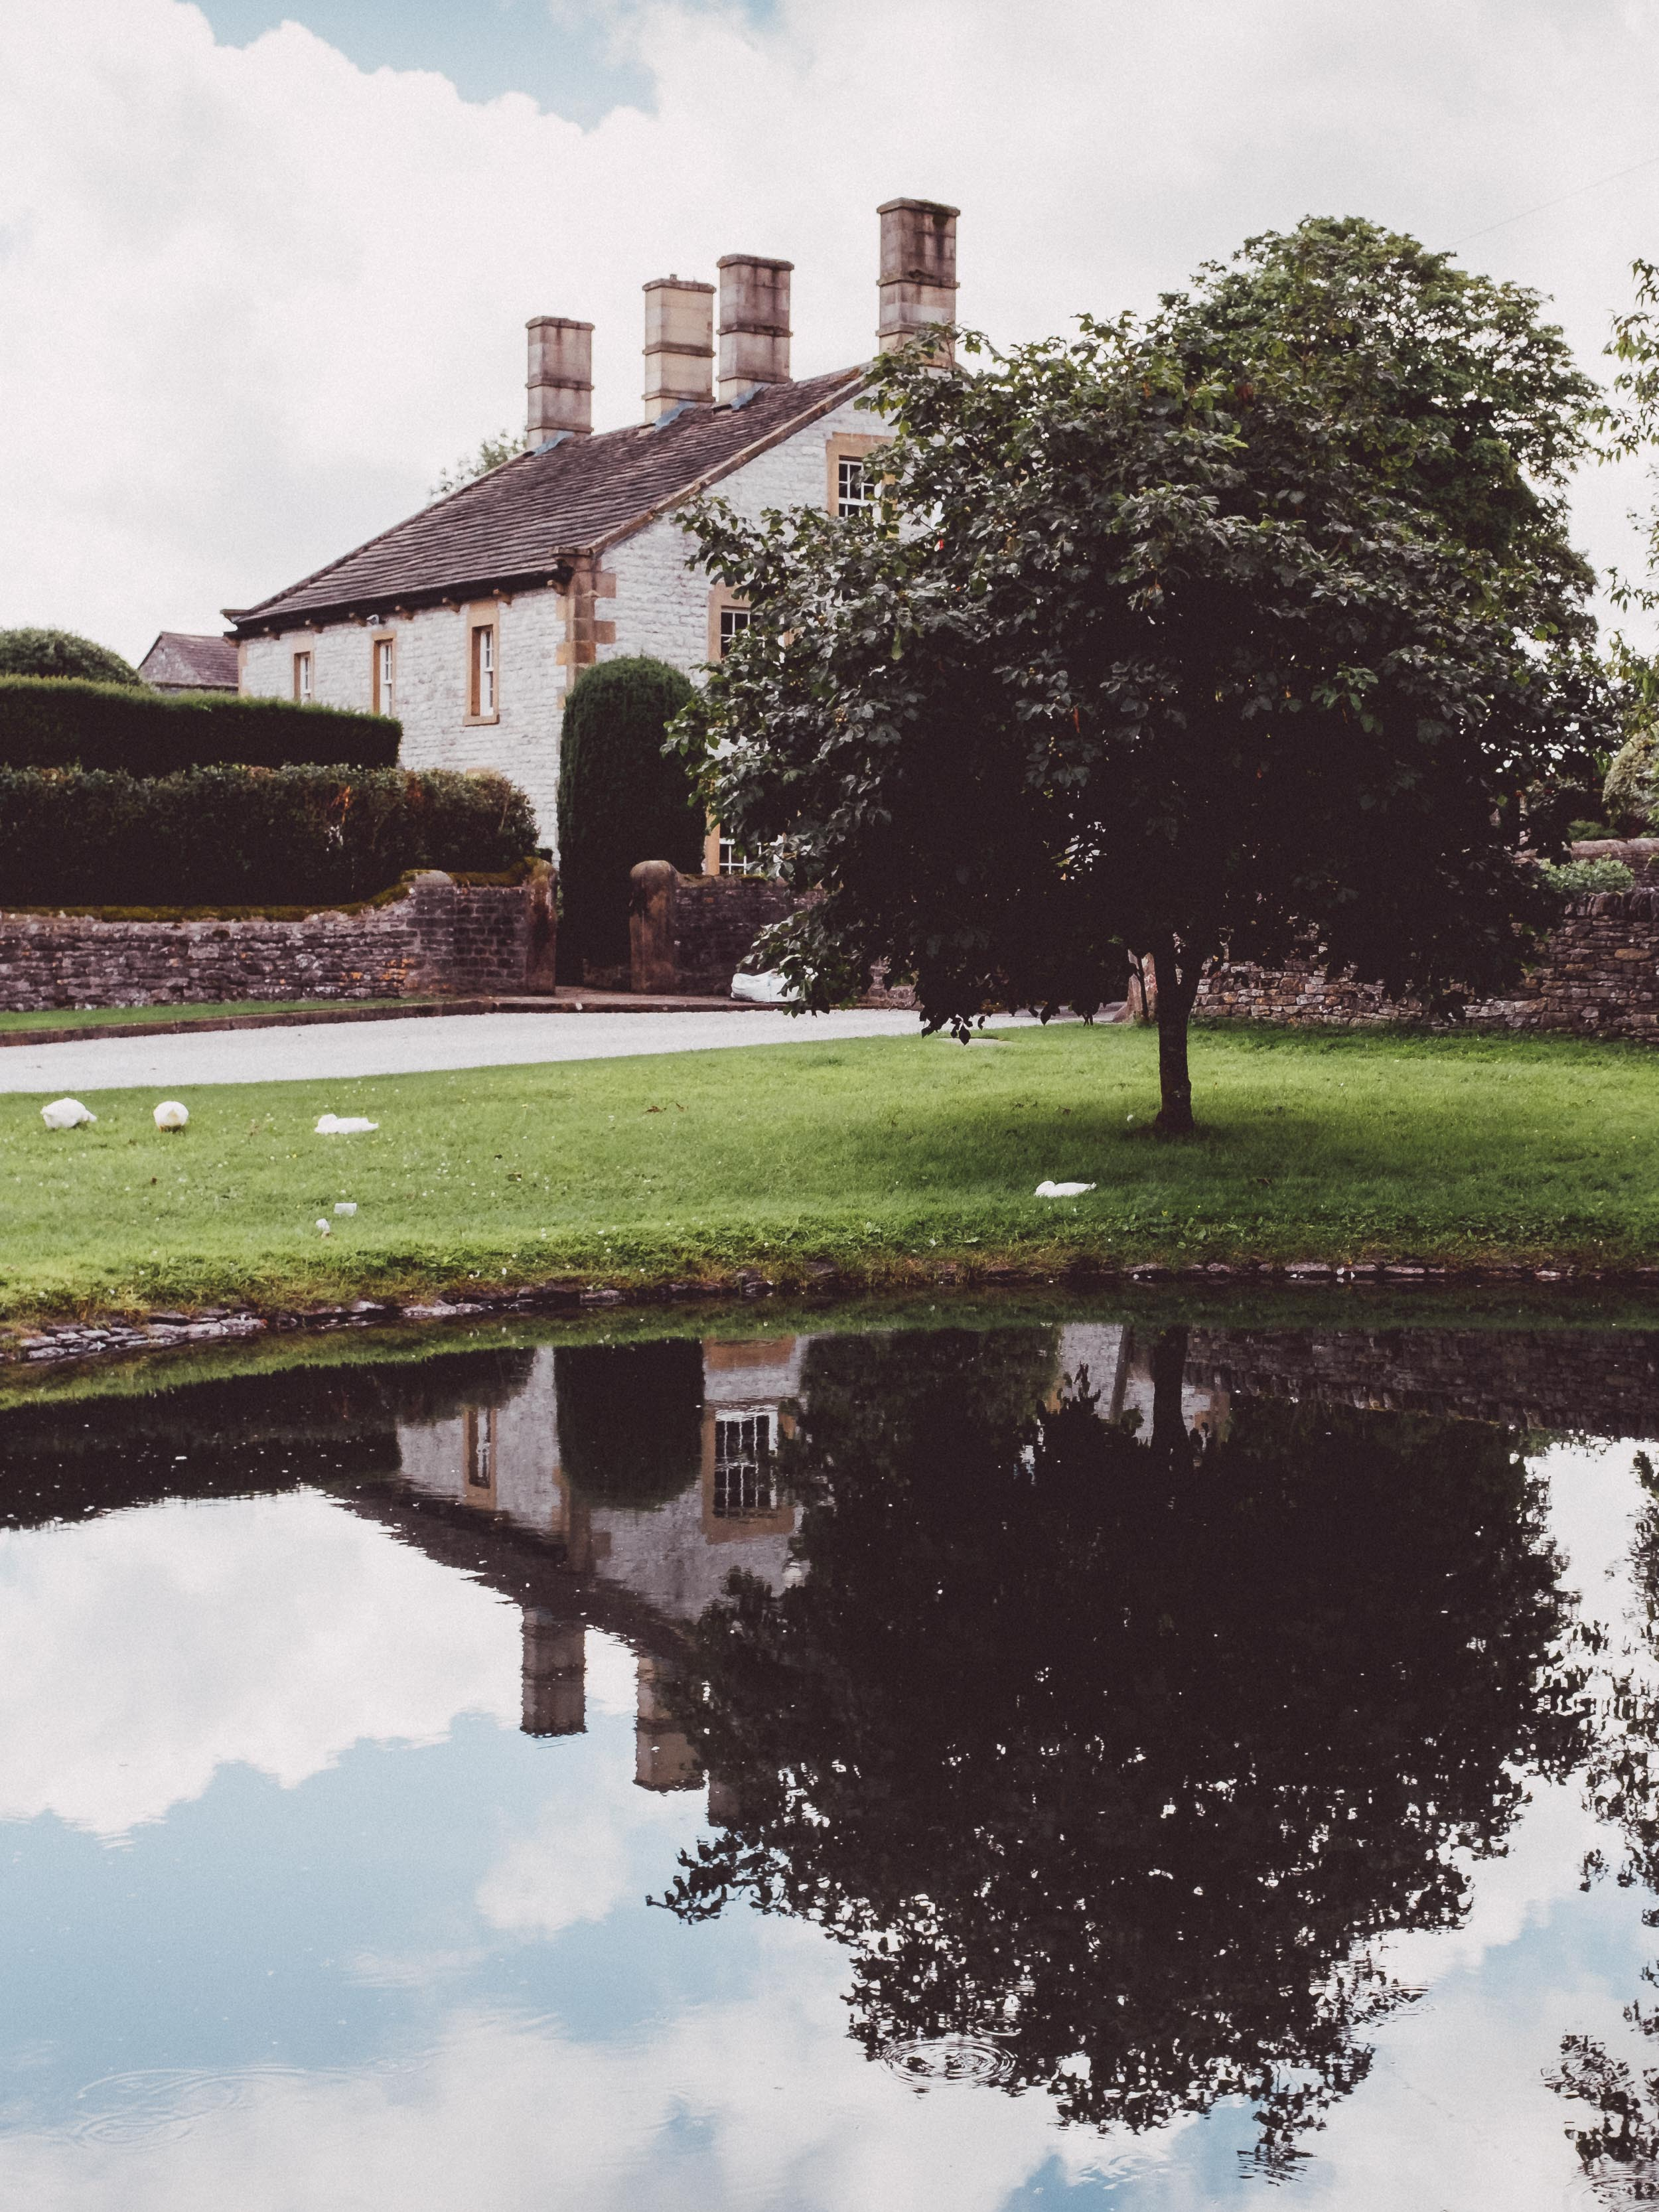 The Pond at Foolow